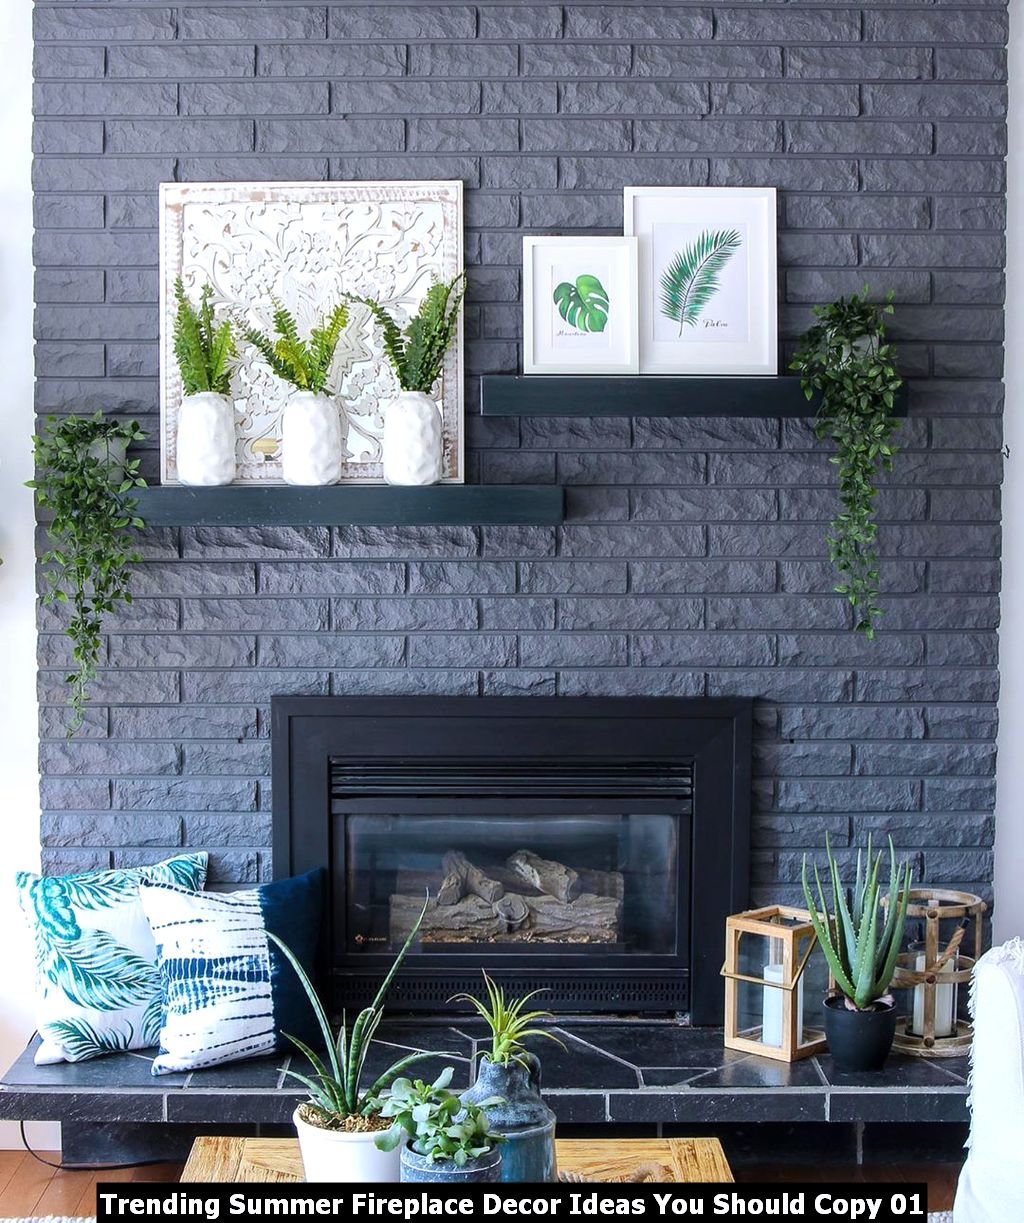 Trending Summer Fireplace Decor Ideas You Should Copy 01